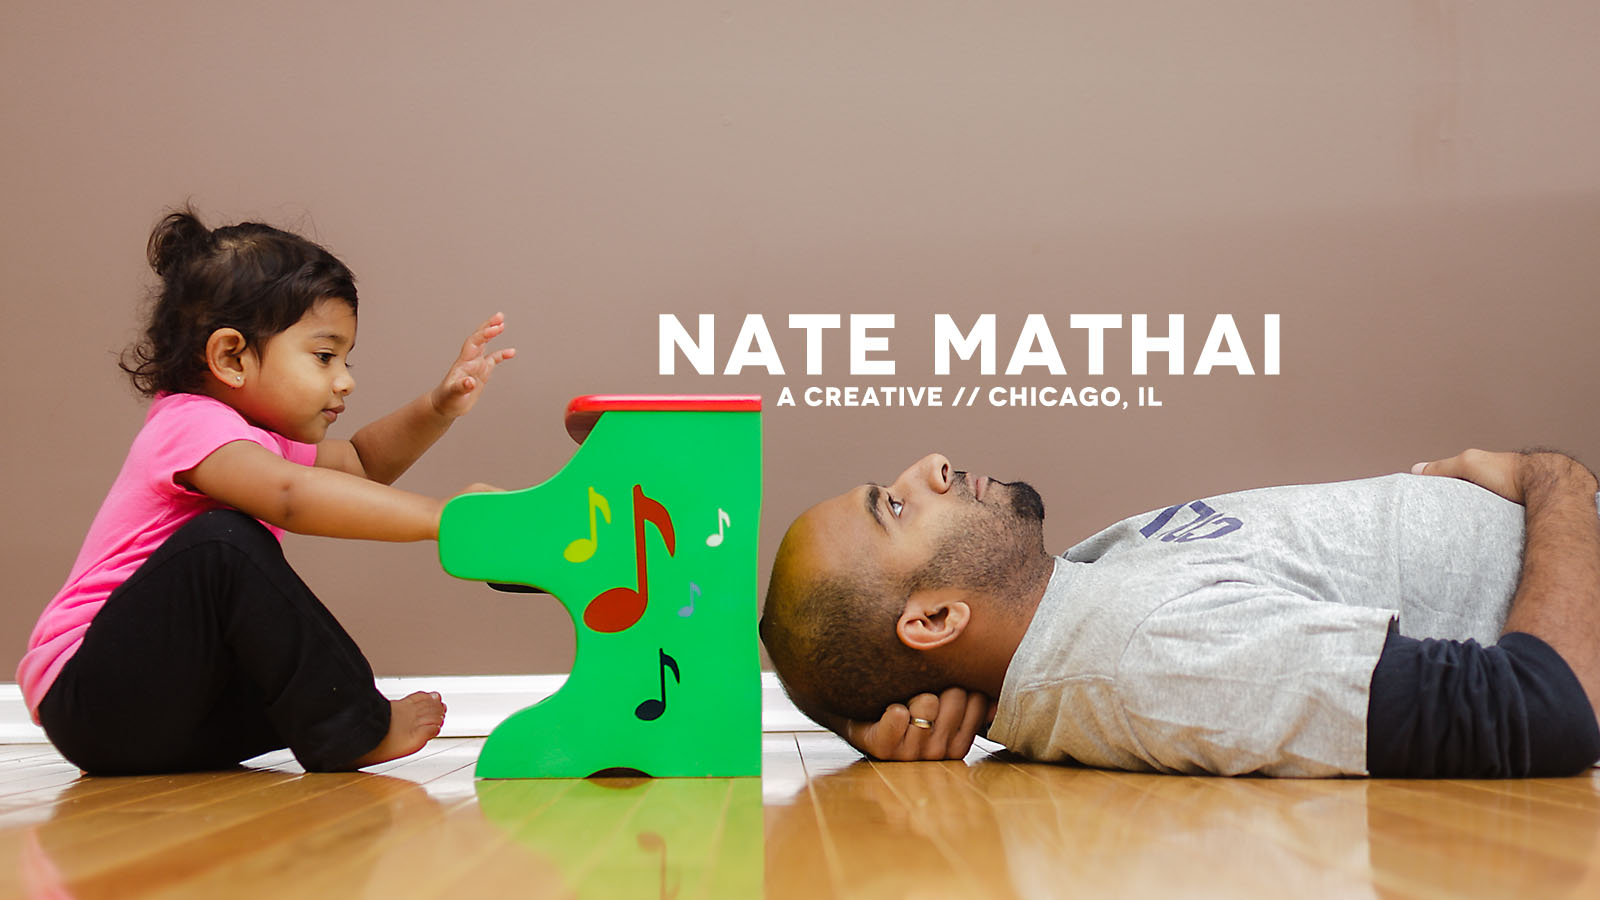 top image for Who Would Shoot Me… (Ed Pingol) by chicago wedding photographer nate mathai